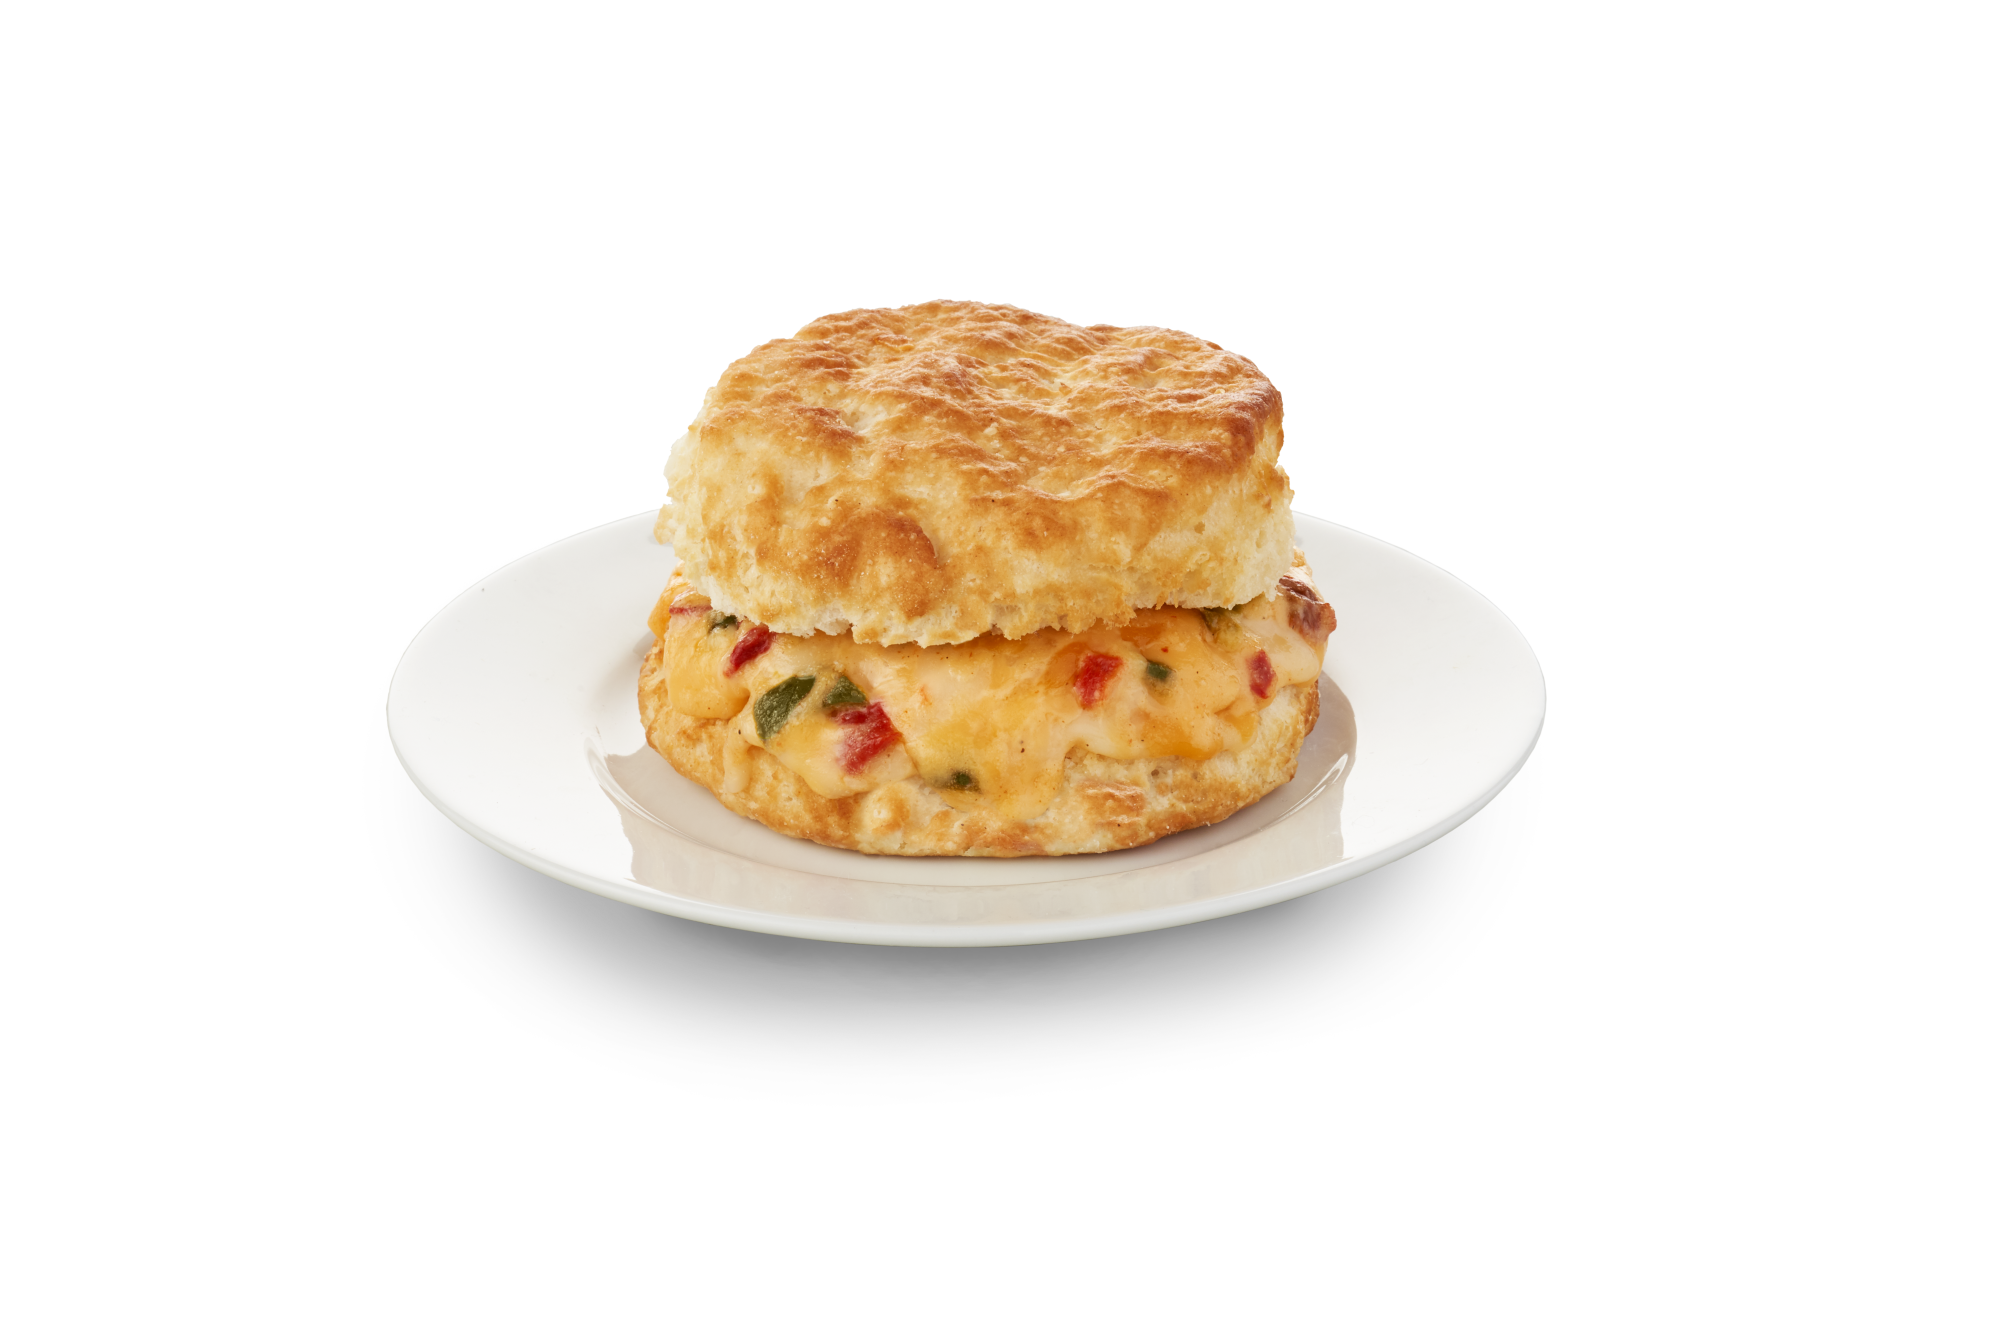 Bojangles' Pimento Cheese Biscuit